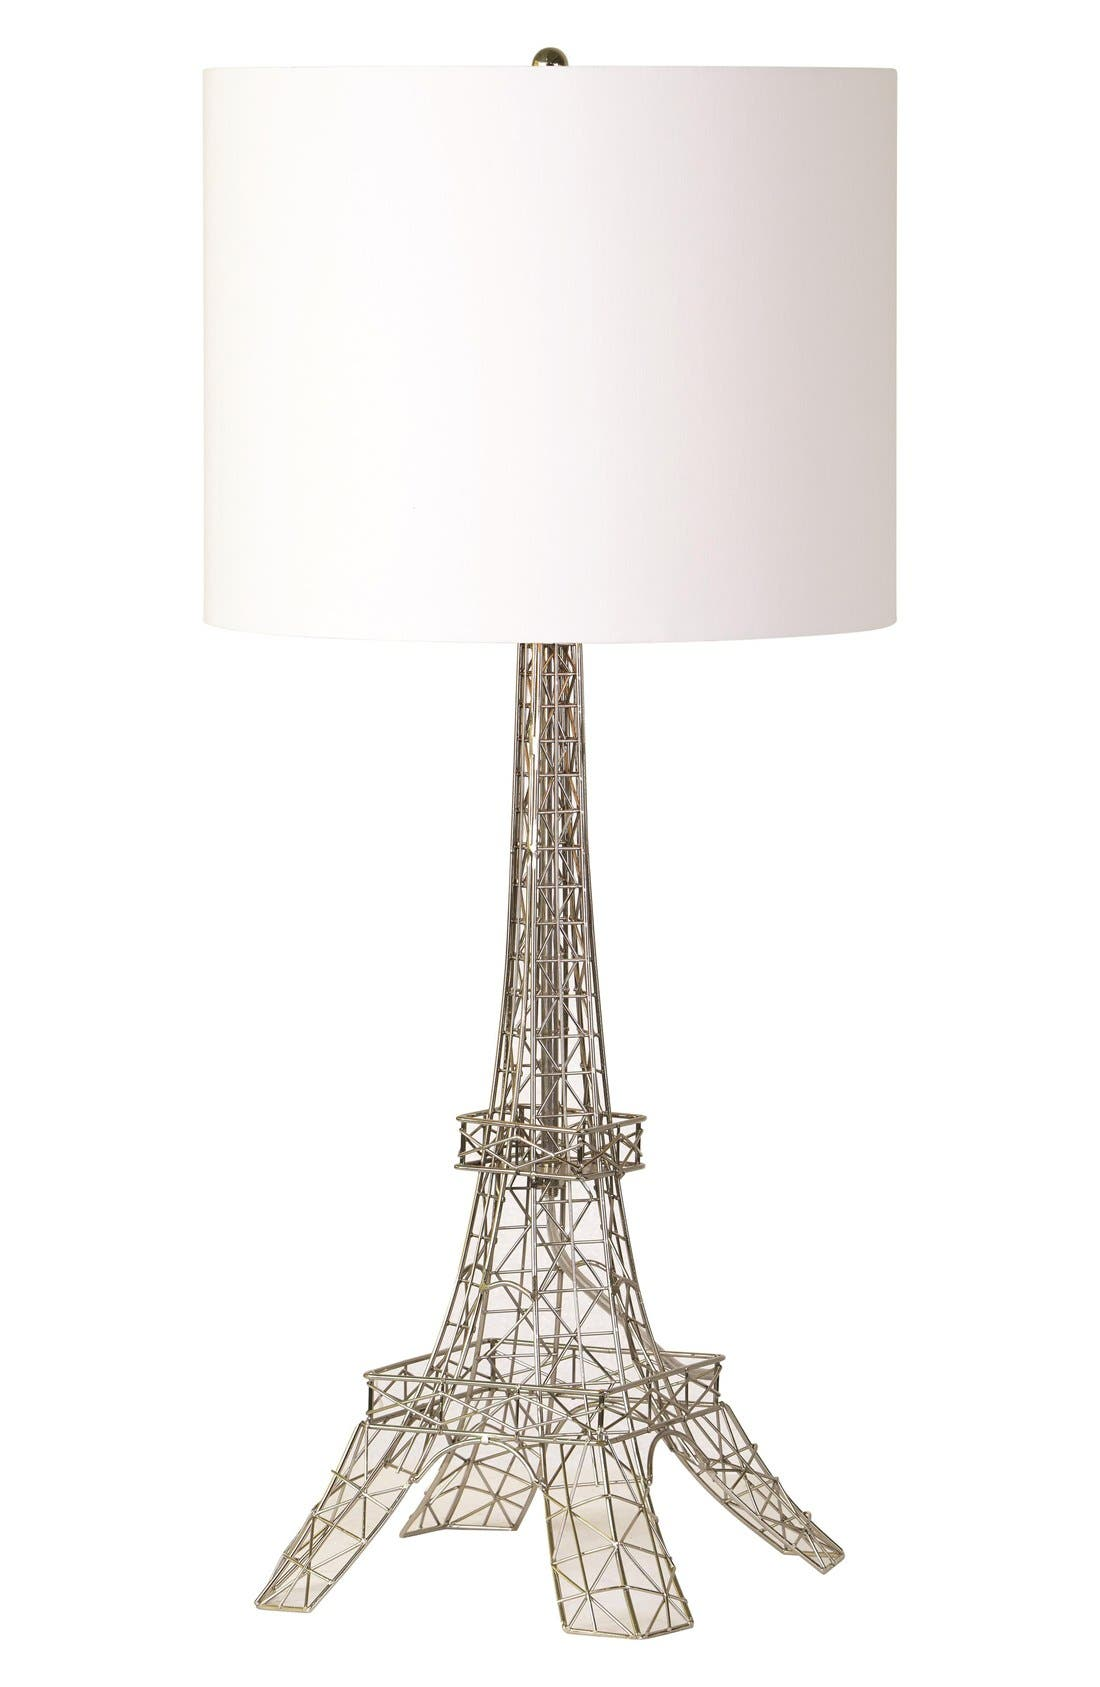 Main Image - Renwil'Gustave' Table Lamp